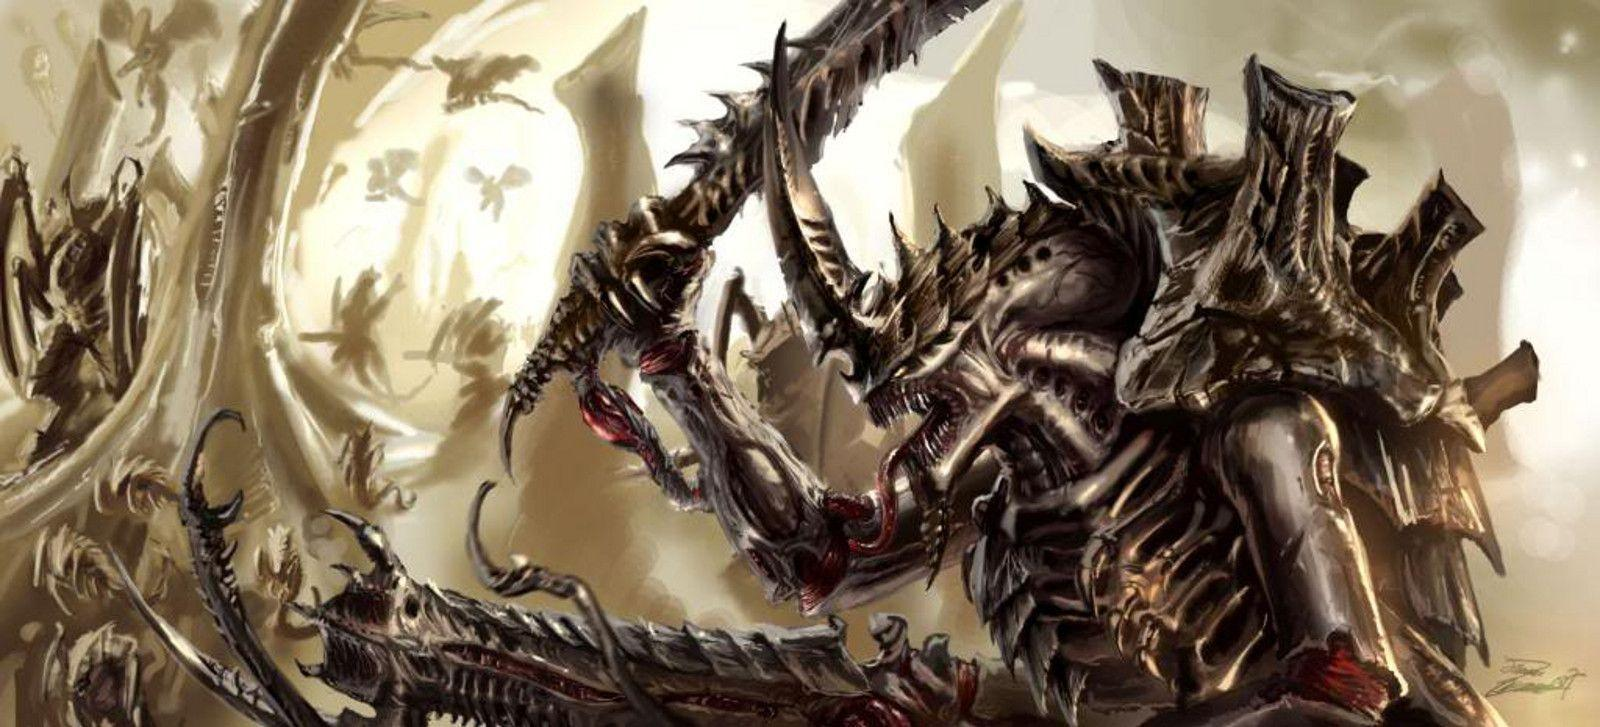 Tyranid Wallpapers - Wallpaper Cave